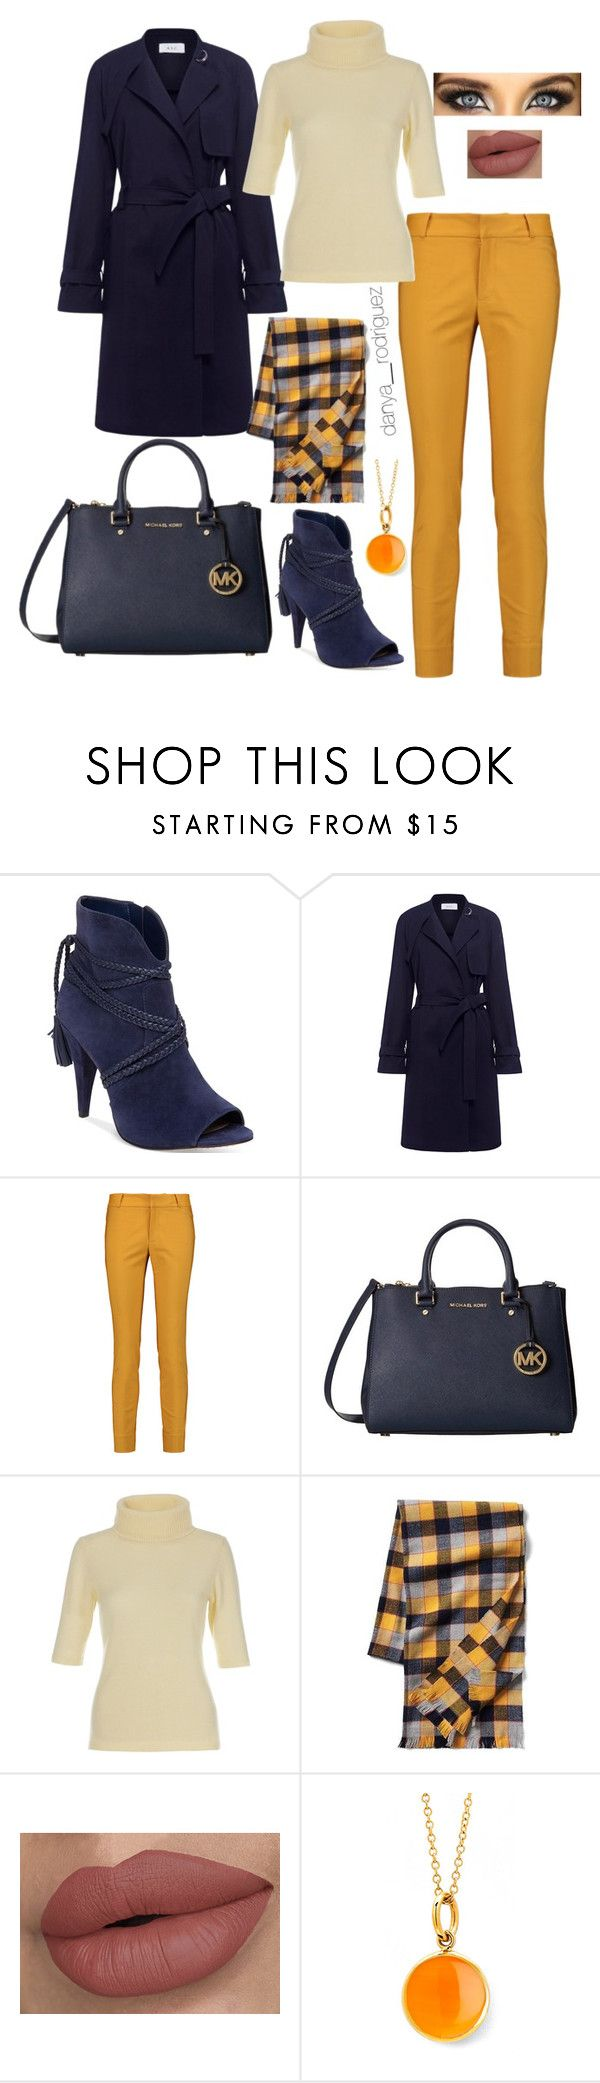 """""""Sin título #110"""" by sousou2578 on Polyvore featuring moda, Vince Camuto, A.L.C., Raoul, Michael Kors, Gap y Syna"""